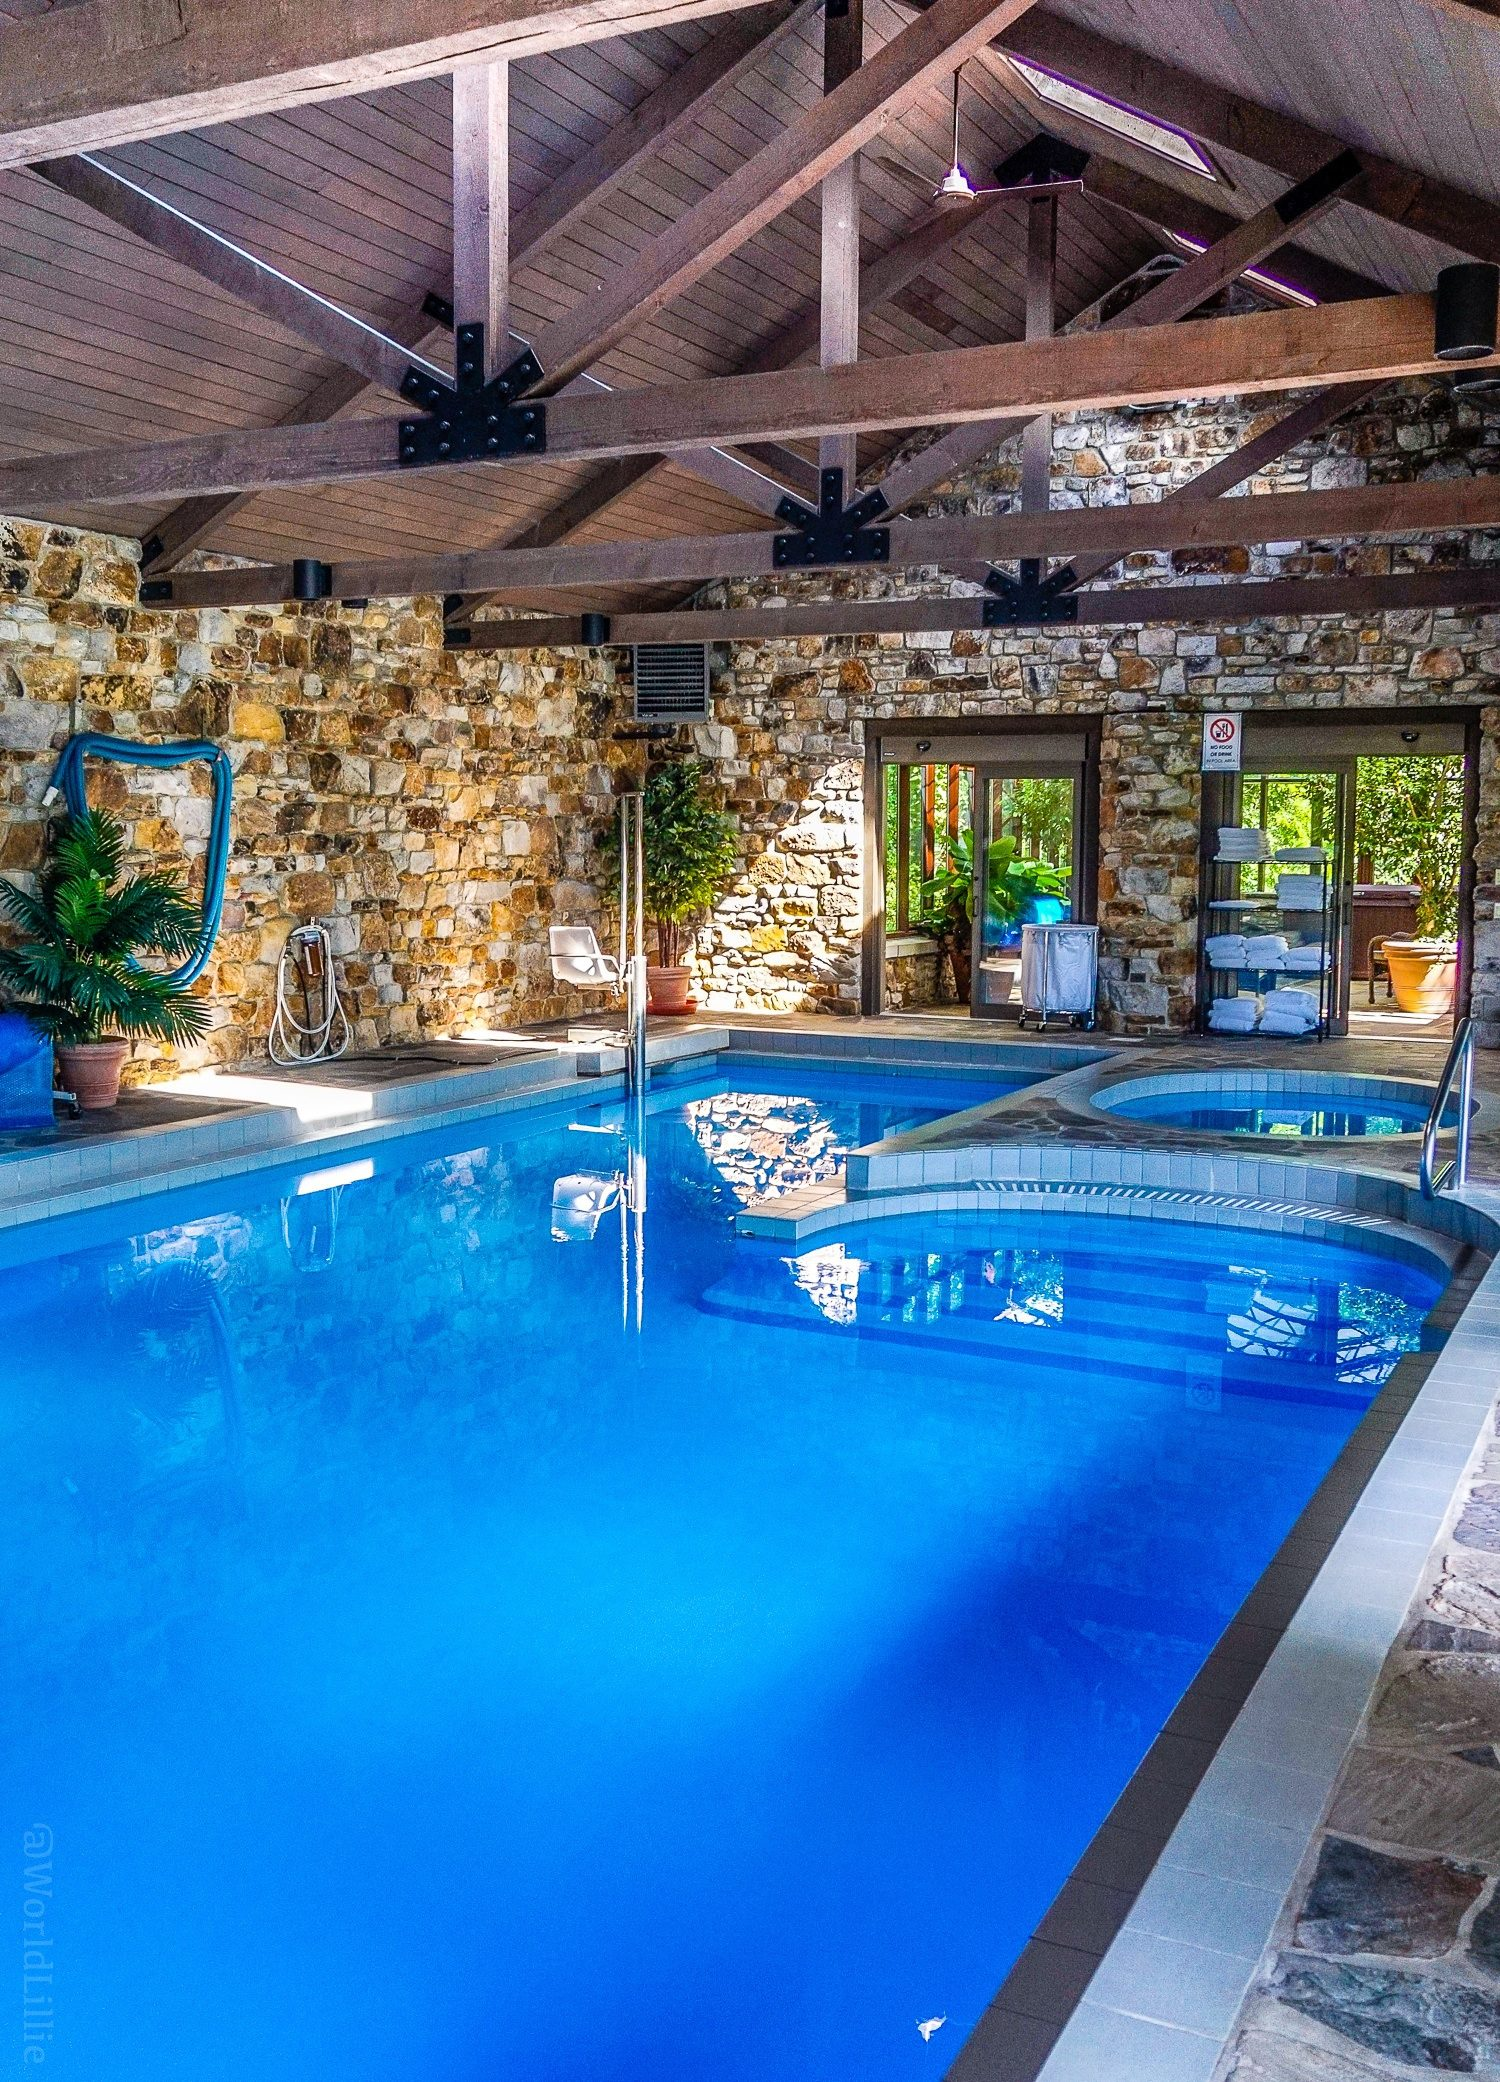 The pool is accessible to people in wheelchairs! Where to stay near Fallingwater in the Laurel Highlands, PA? Oak Lodge is a great hotel and B&B with luxury private cabins in southwest Pennsylvania.